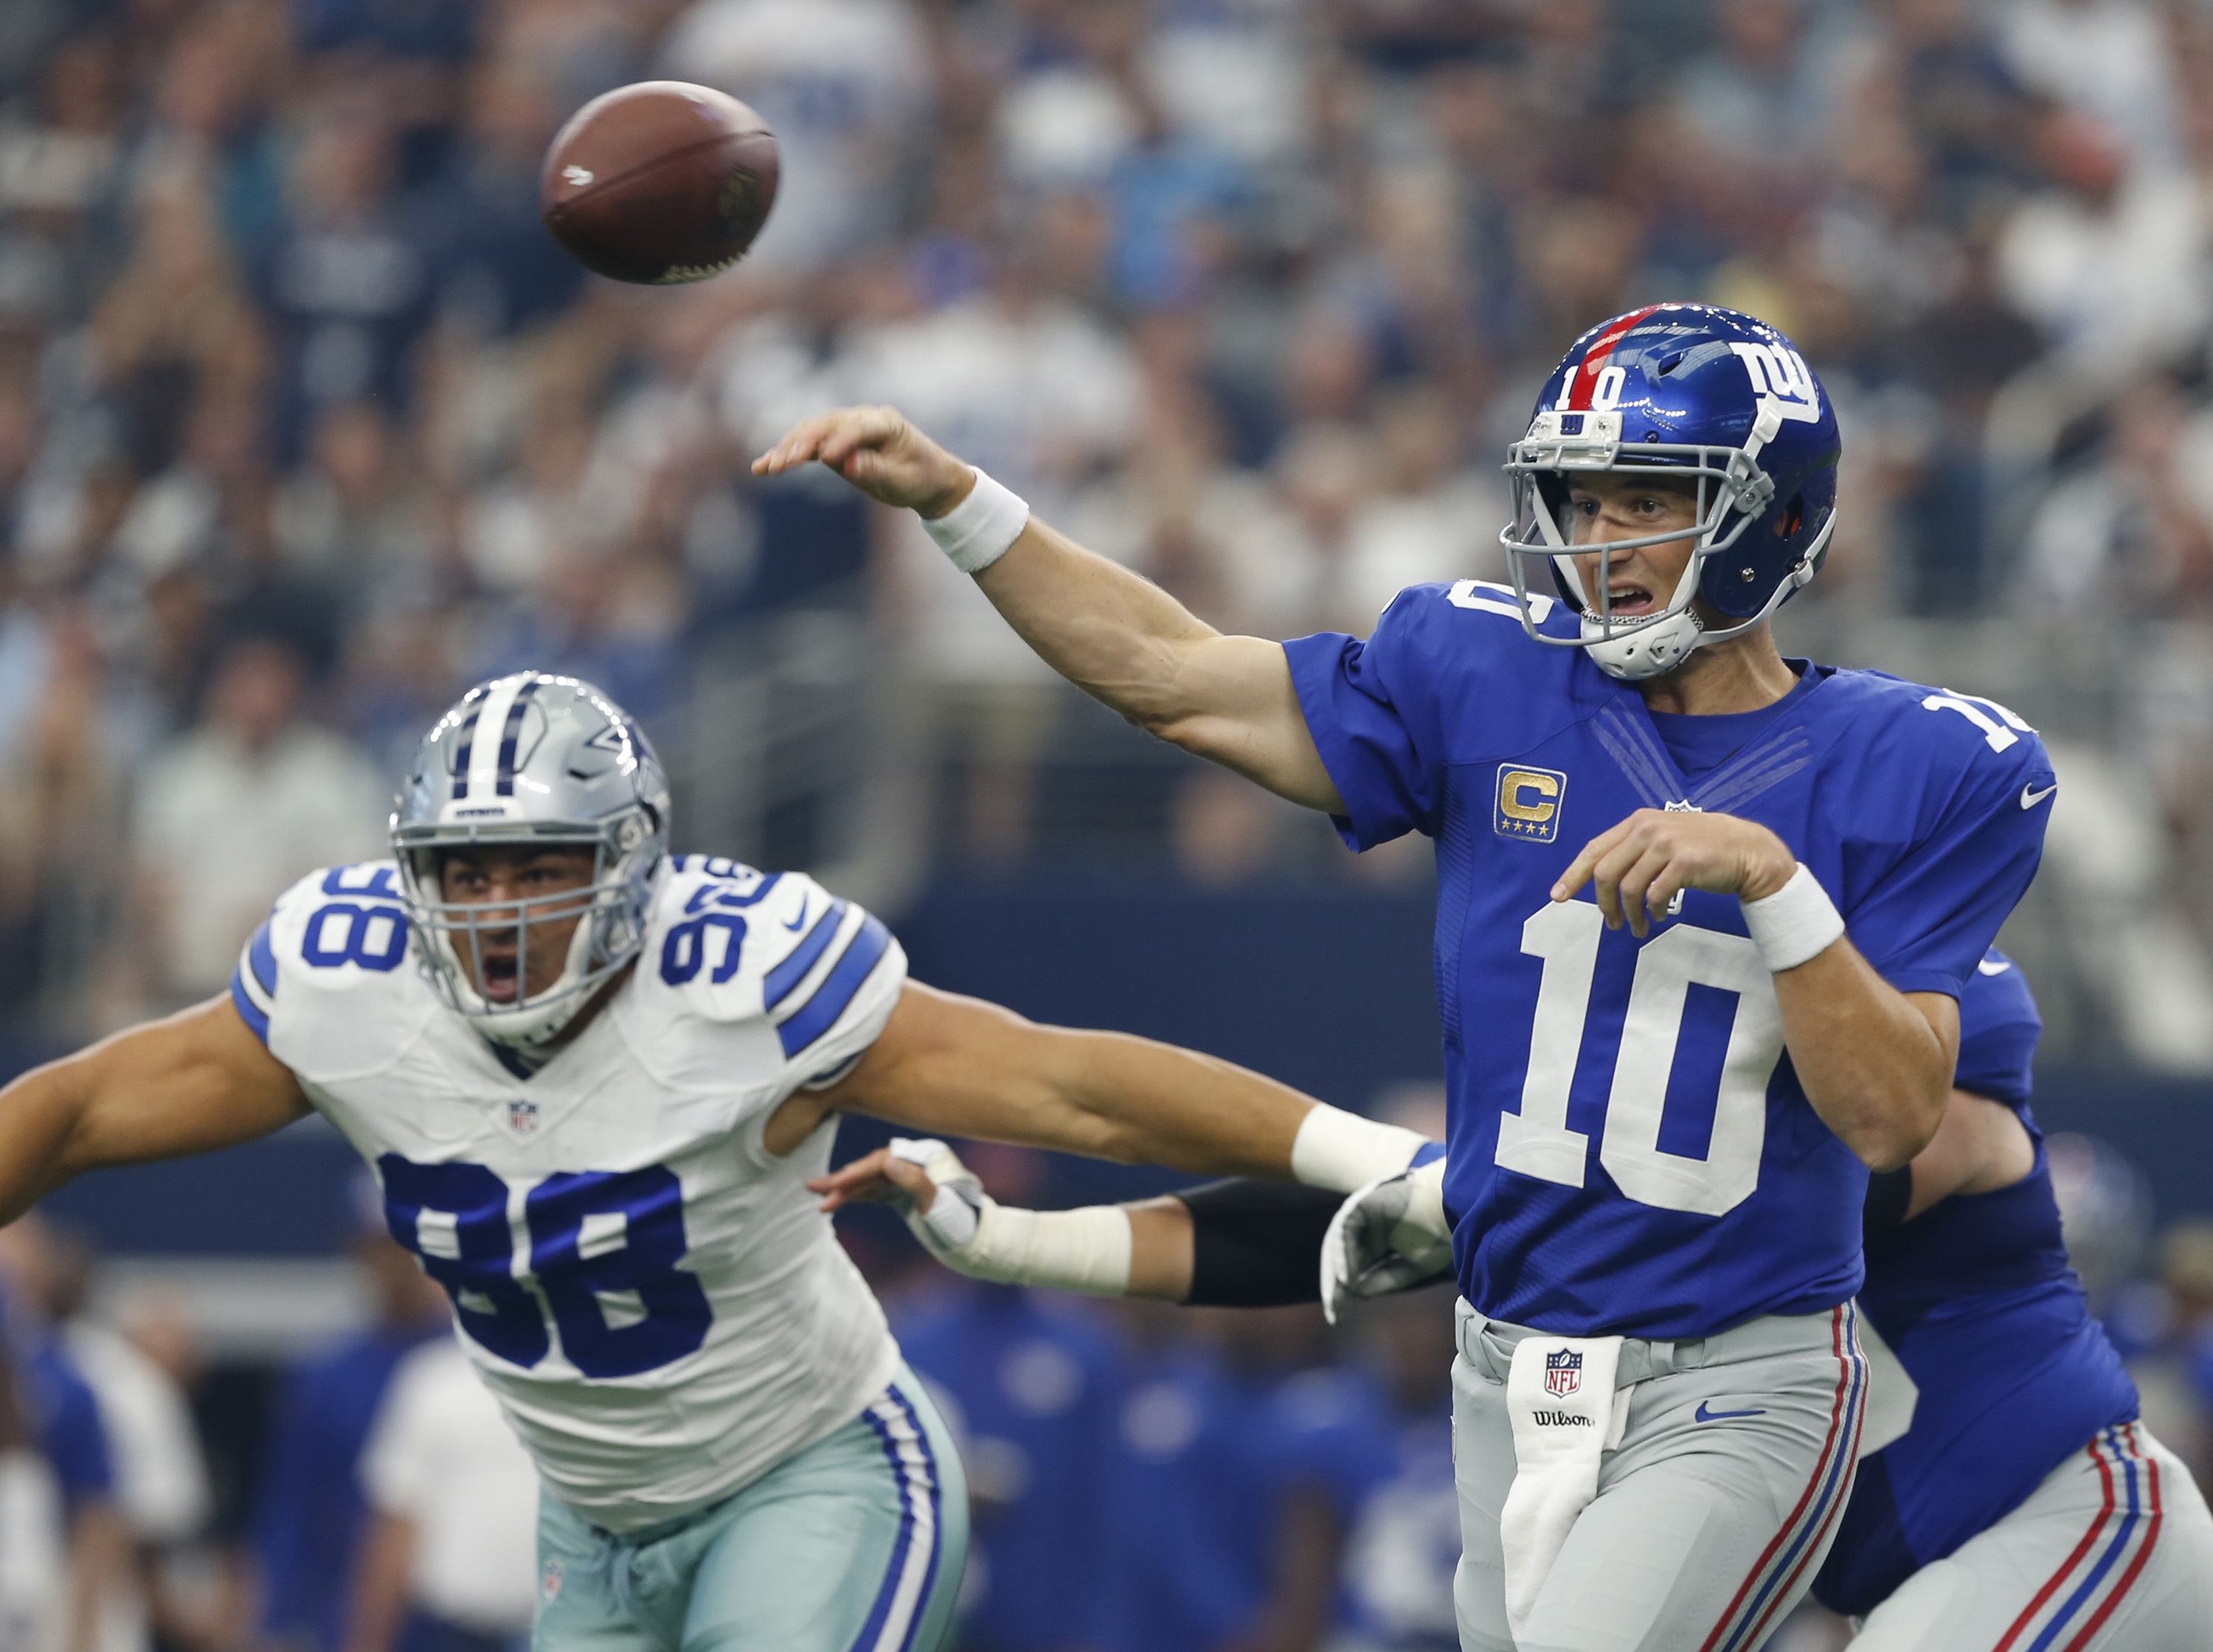 New York Giant quarterback Eli Manning throws down field as Dallas Cowboy's Tyrone Crawford defends during the first half of an NFL football game at AT&T Stadium, Sunday, Sept. 11, 2016, in Arlington, Texas. (Jose Yau/Waco Tribune Herald via AP)